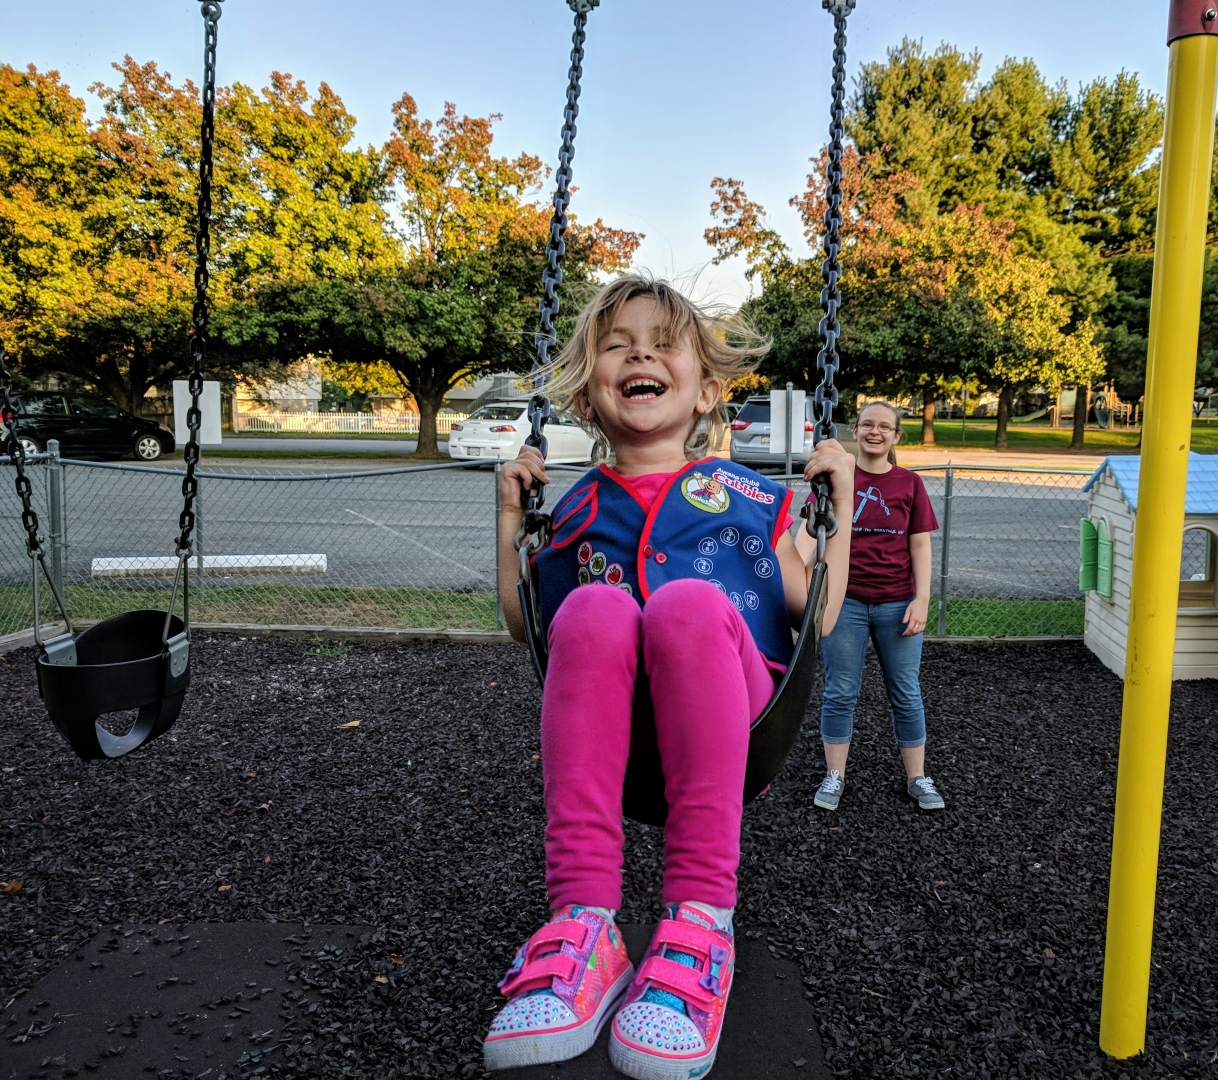 Awana kid swing